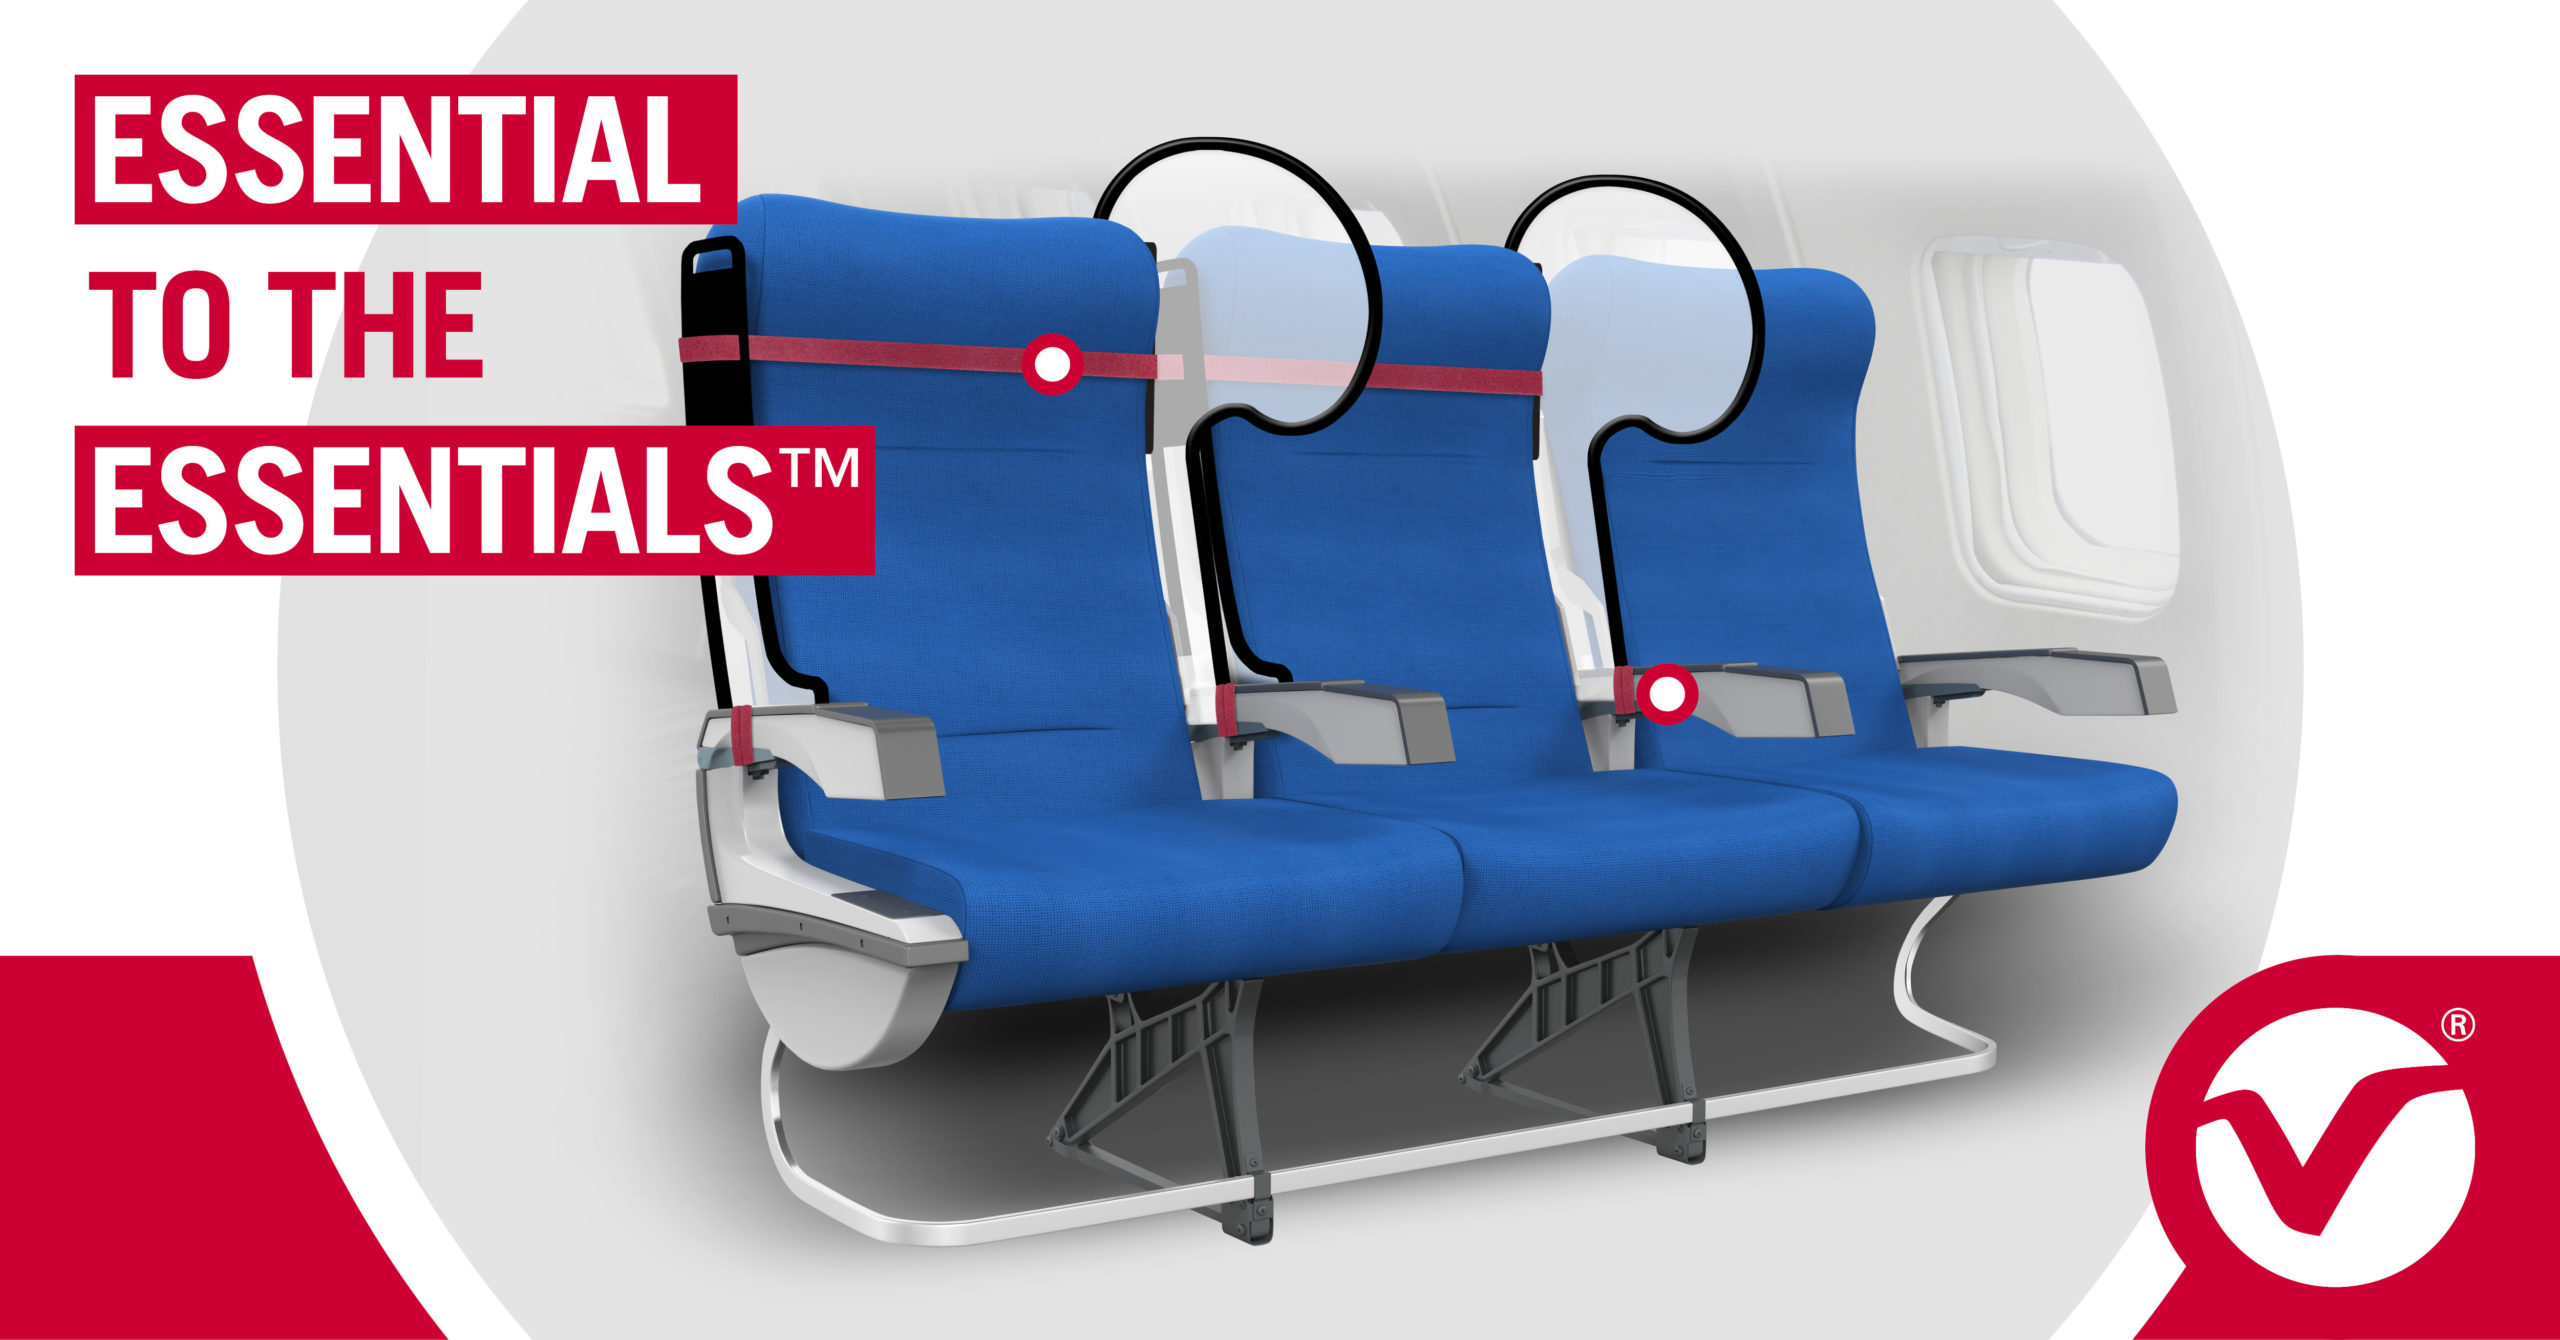 sneeze guard airline seats essentials to the essential